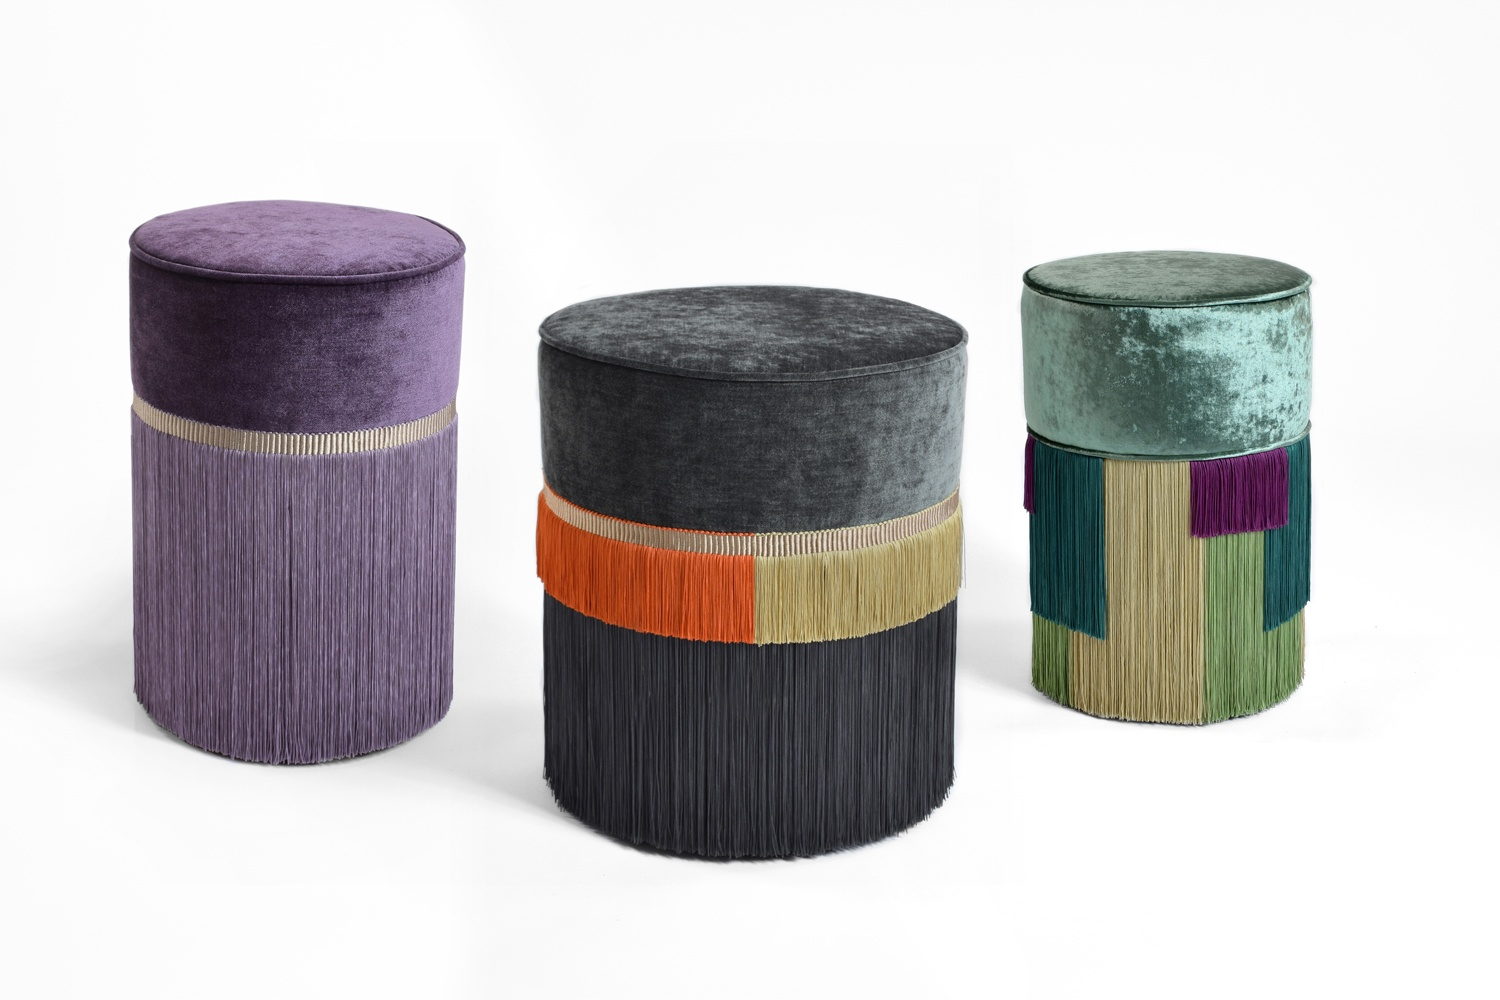 lorenza-bozzoli-presents-couture-pouf-for-luisa-via-roma-home-yellowtrace-06_01